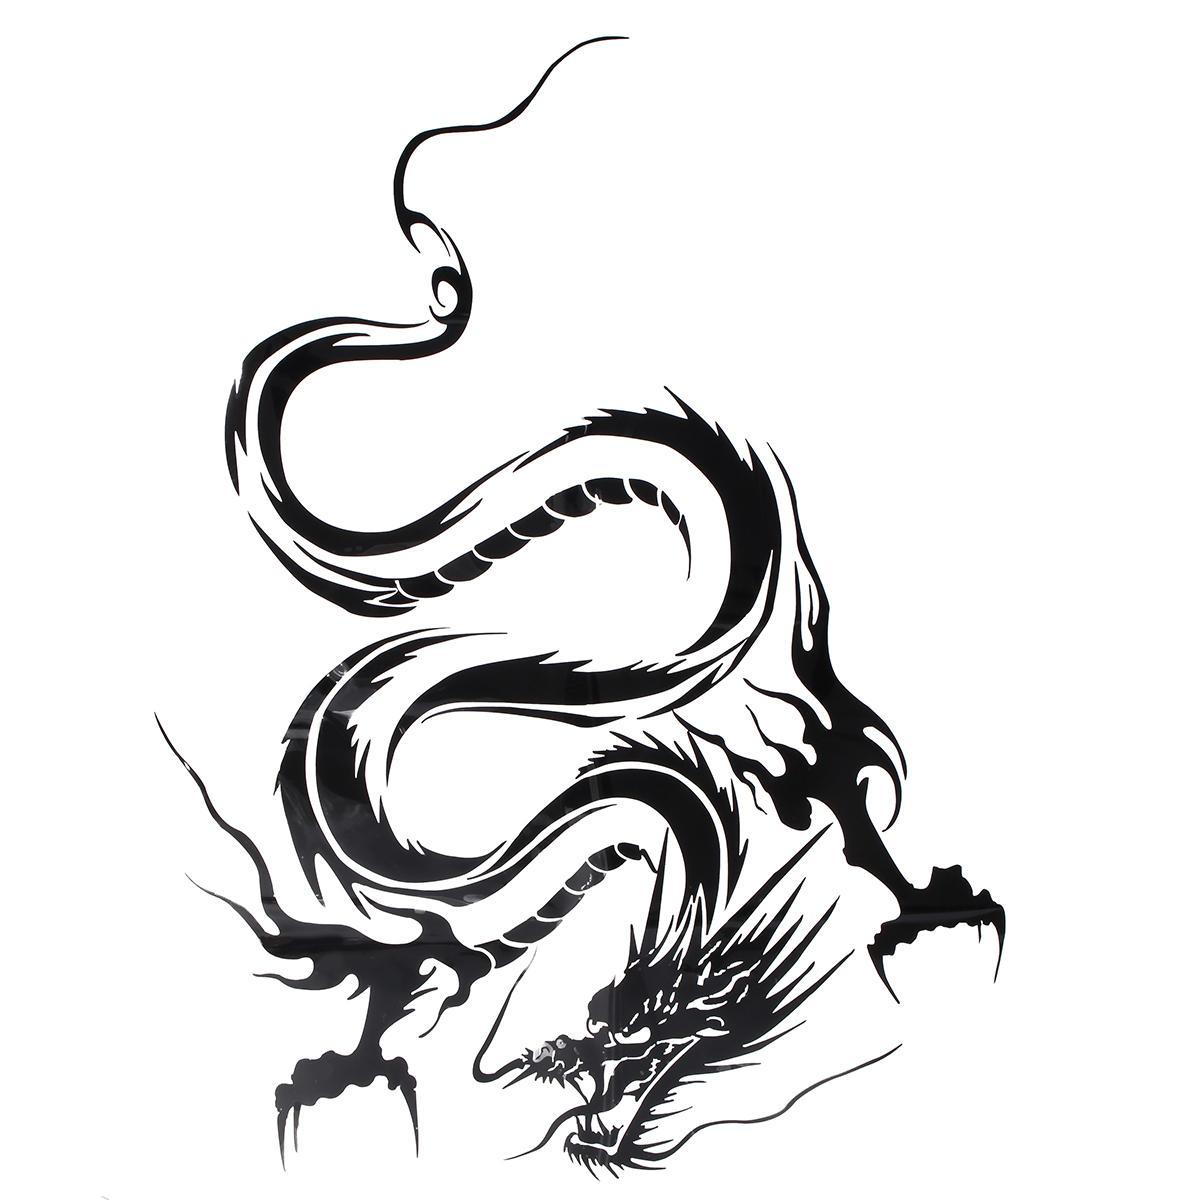 Reflective Dragon Totem Scratching Decals Car Stickers Full Body Car Head Styling Sticker Black Lazada Ph